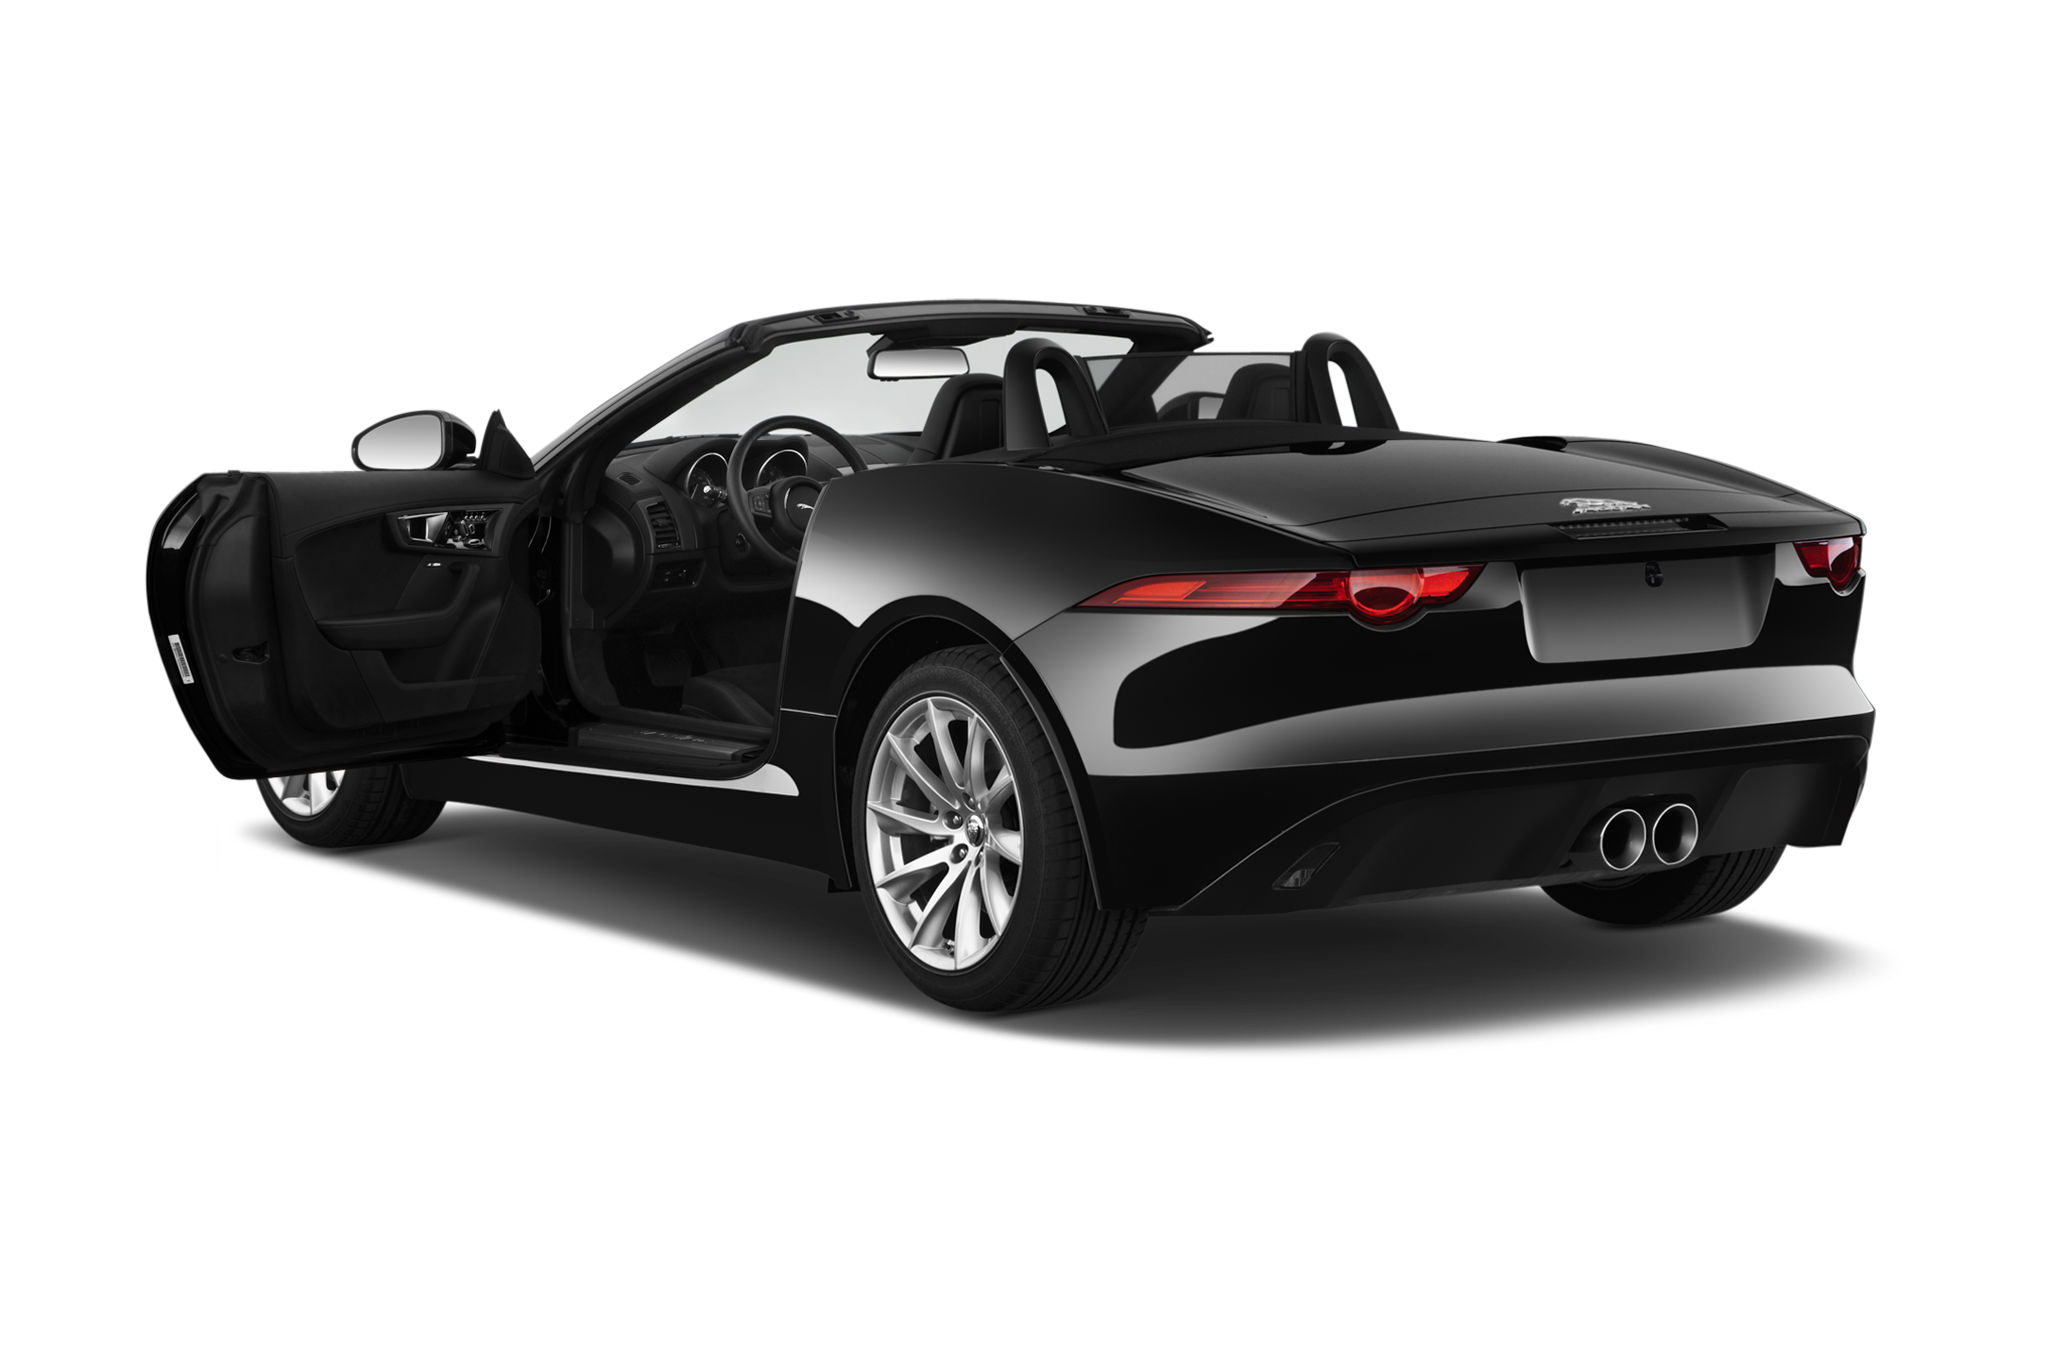 parkers jaguar xk convertible how much price to is insure review it